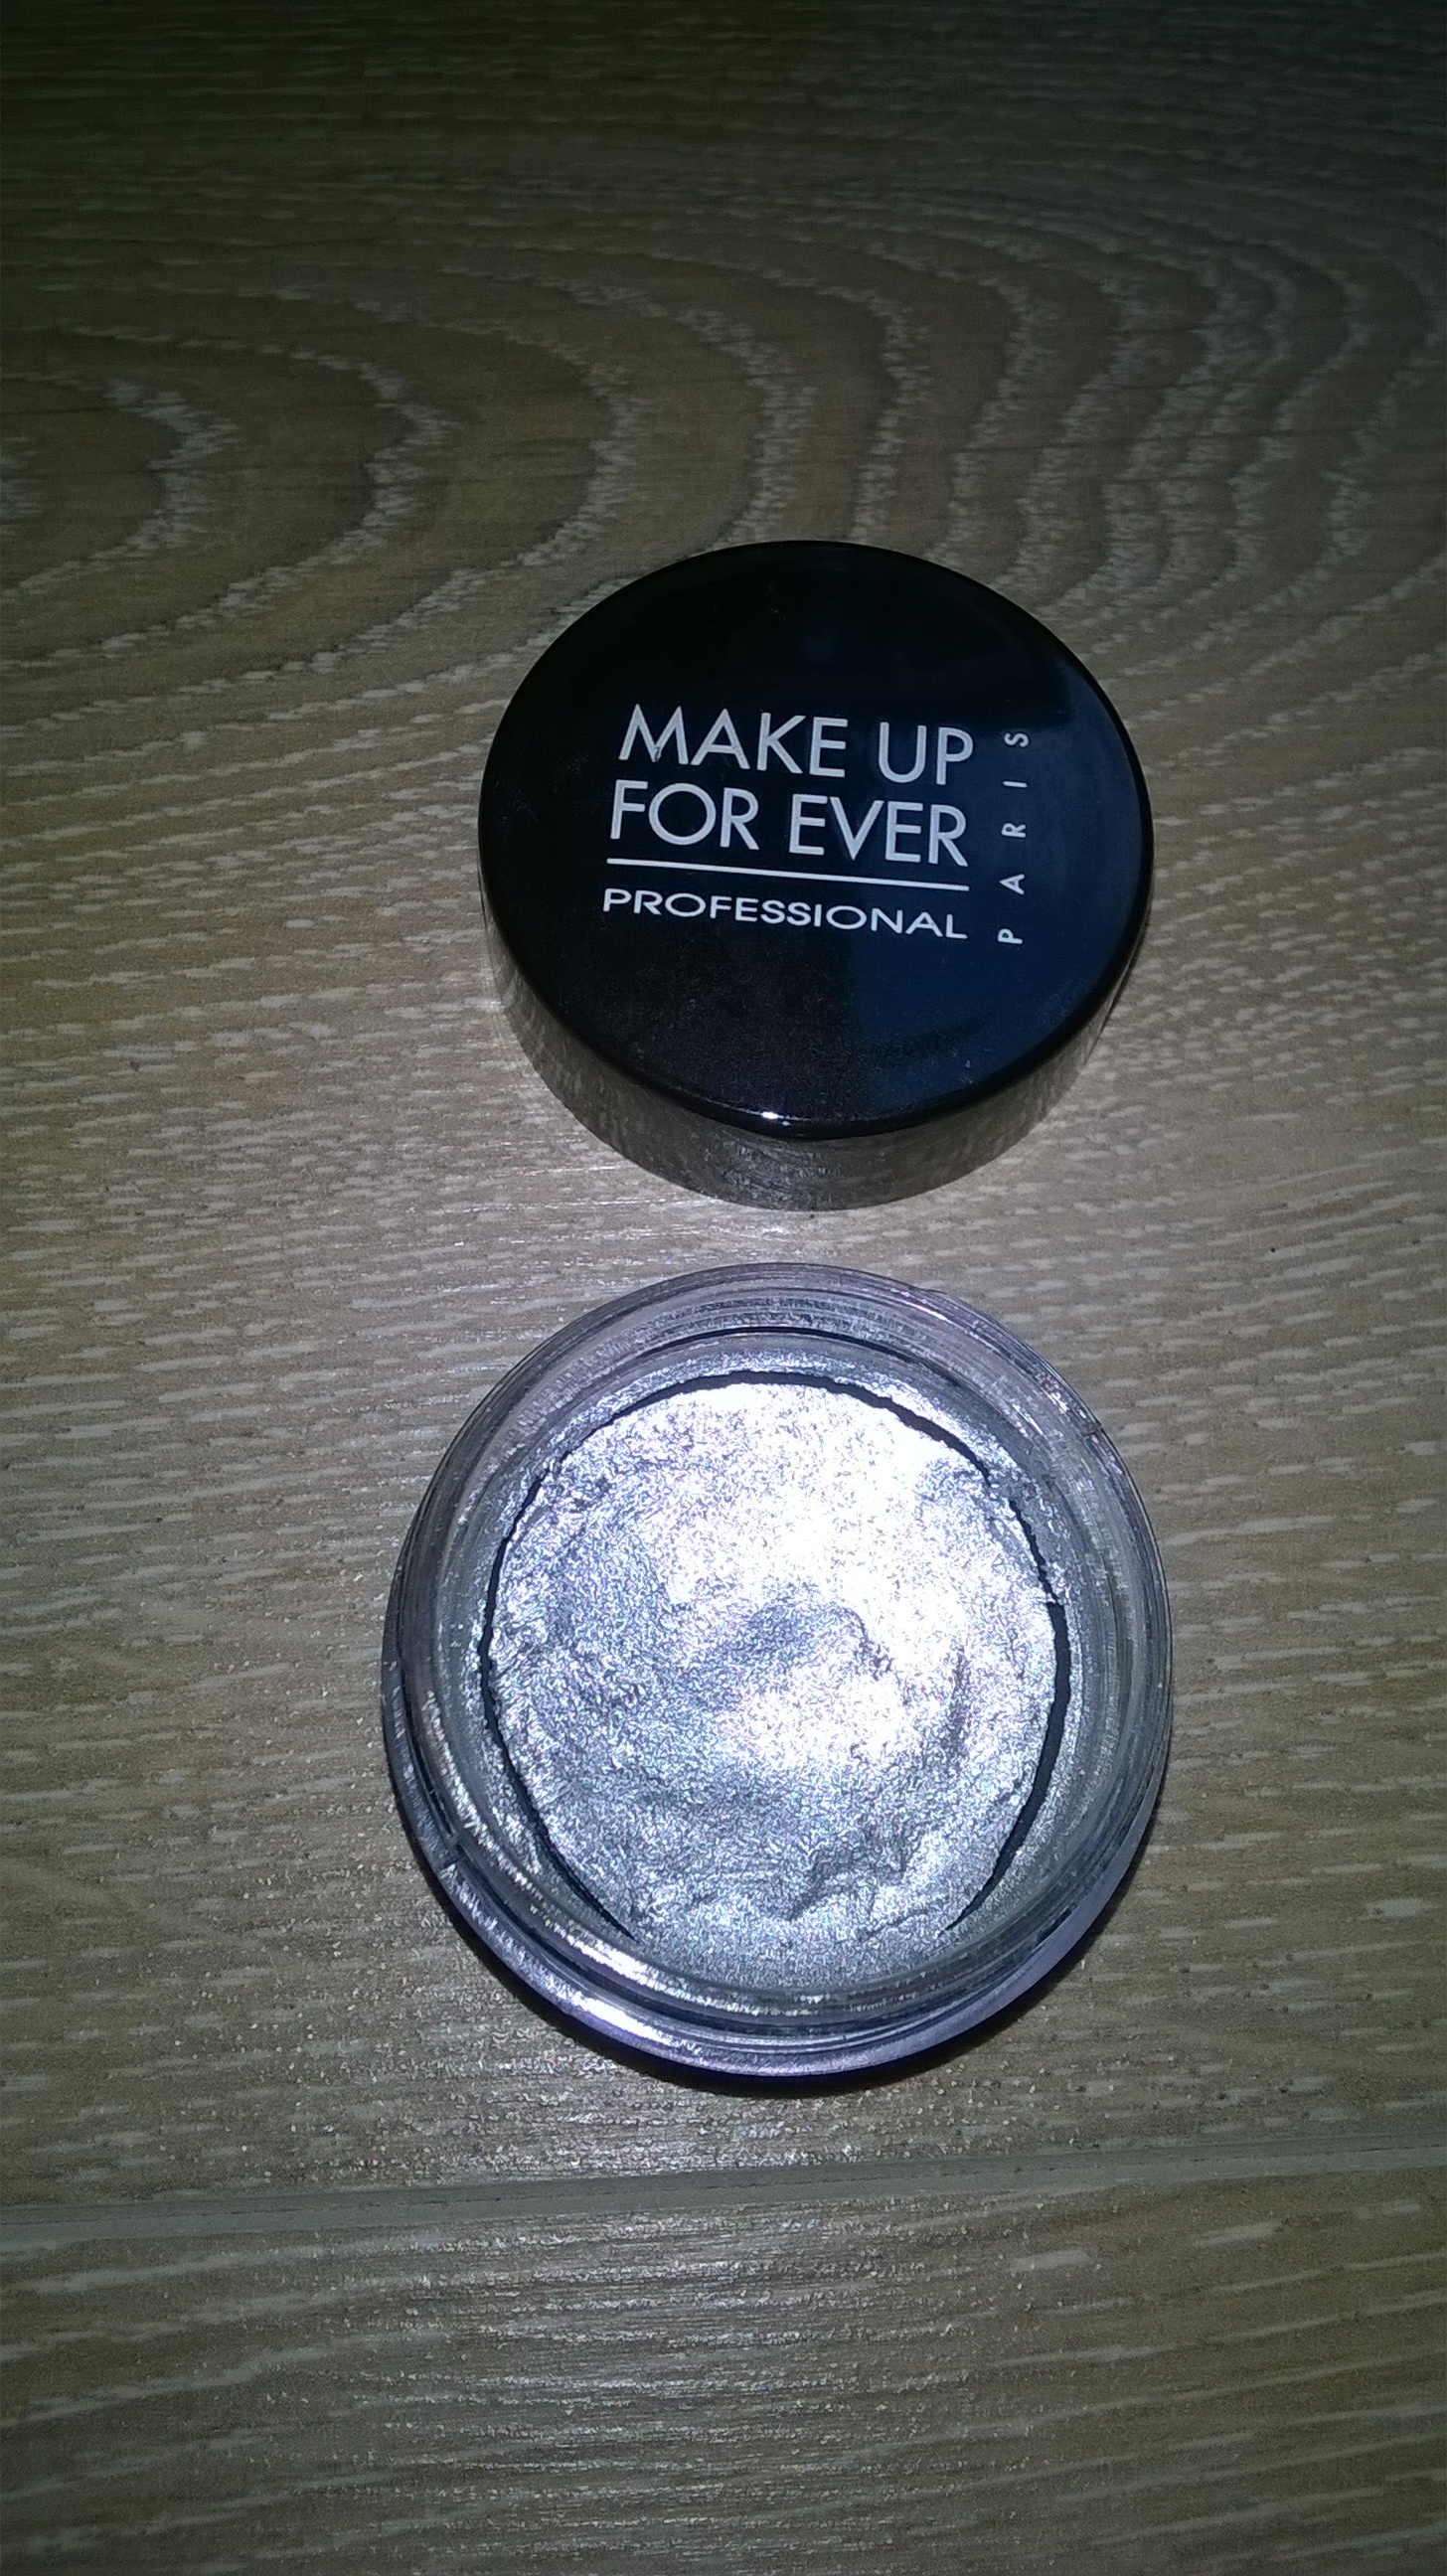 WP_20141014_066.jpg de Aqua Cream de Make Up For Ever